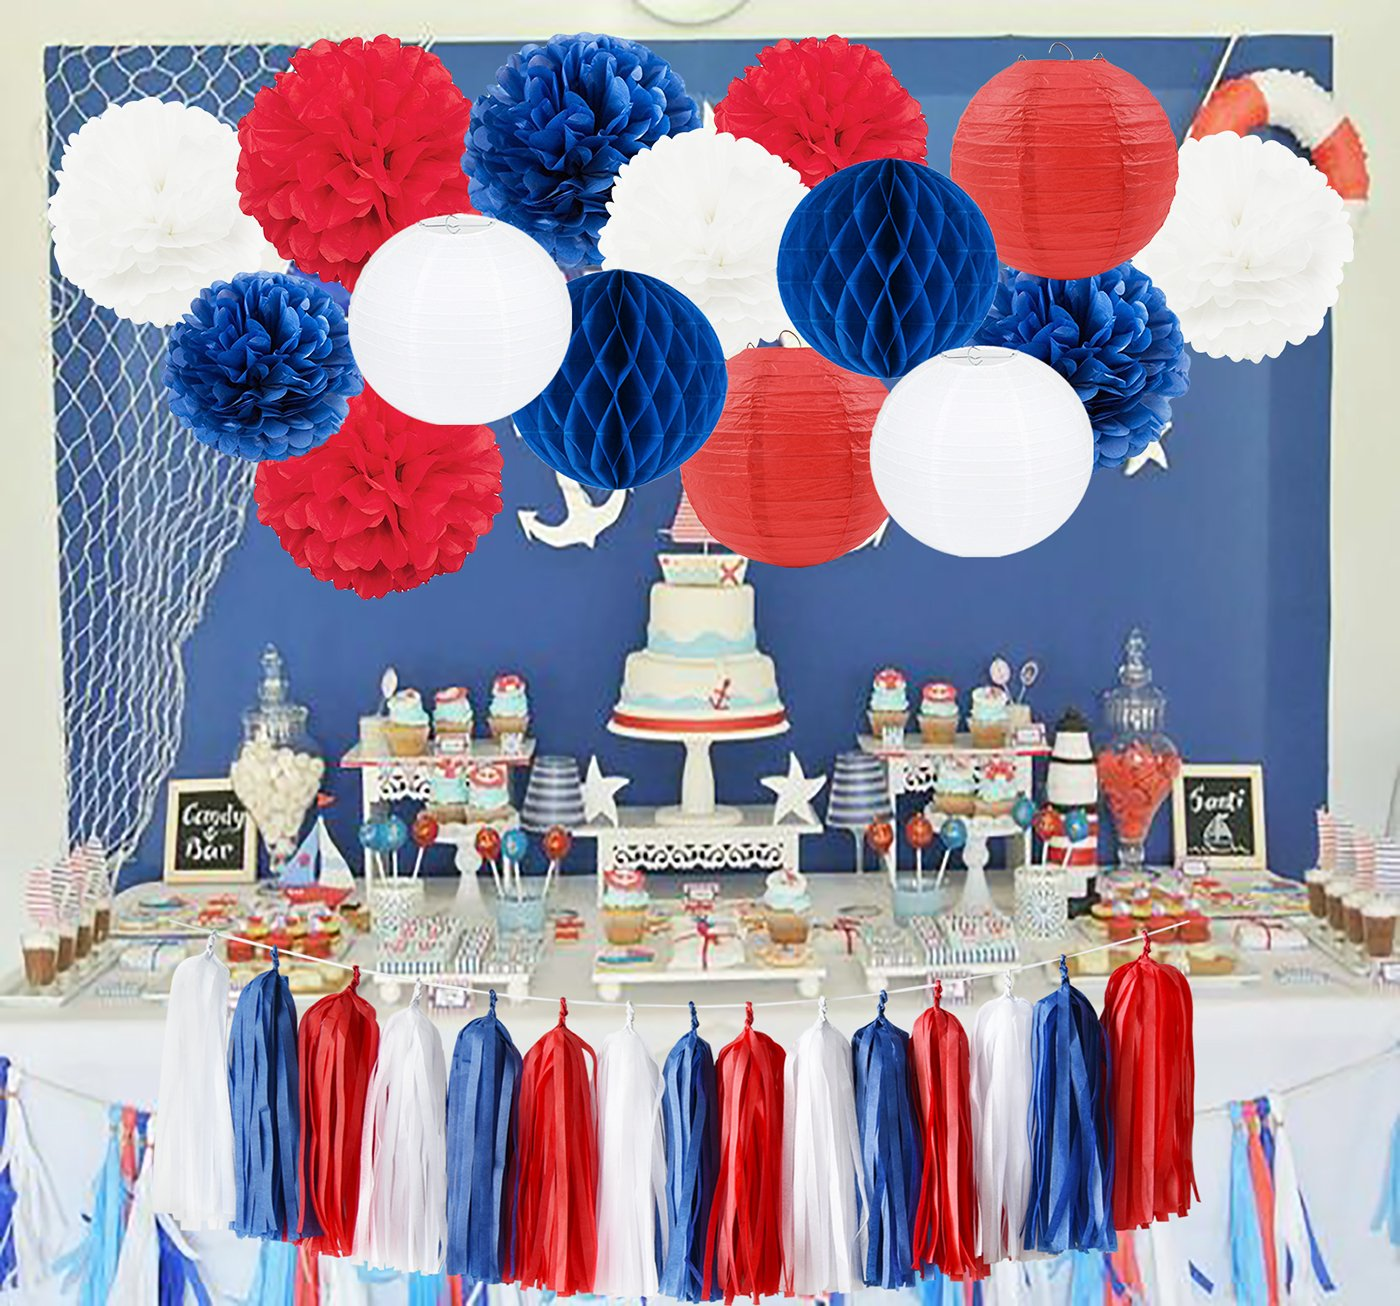 Navy Blue Mixed Red White 4th of July Decorations Patriotic Party Decorations Tissue Pom Pom Paper Lanterns Tassel Garland Fourth of July Party Favors Baby Shower Birthday Sail Boats Party Decorations by Furuix (Image #2)